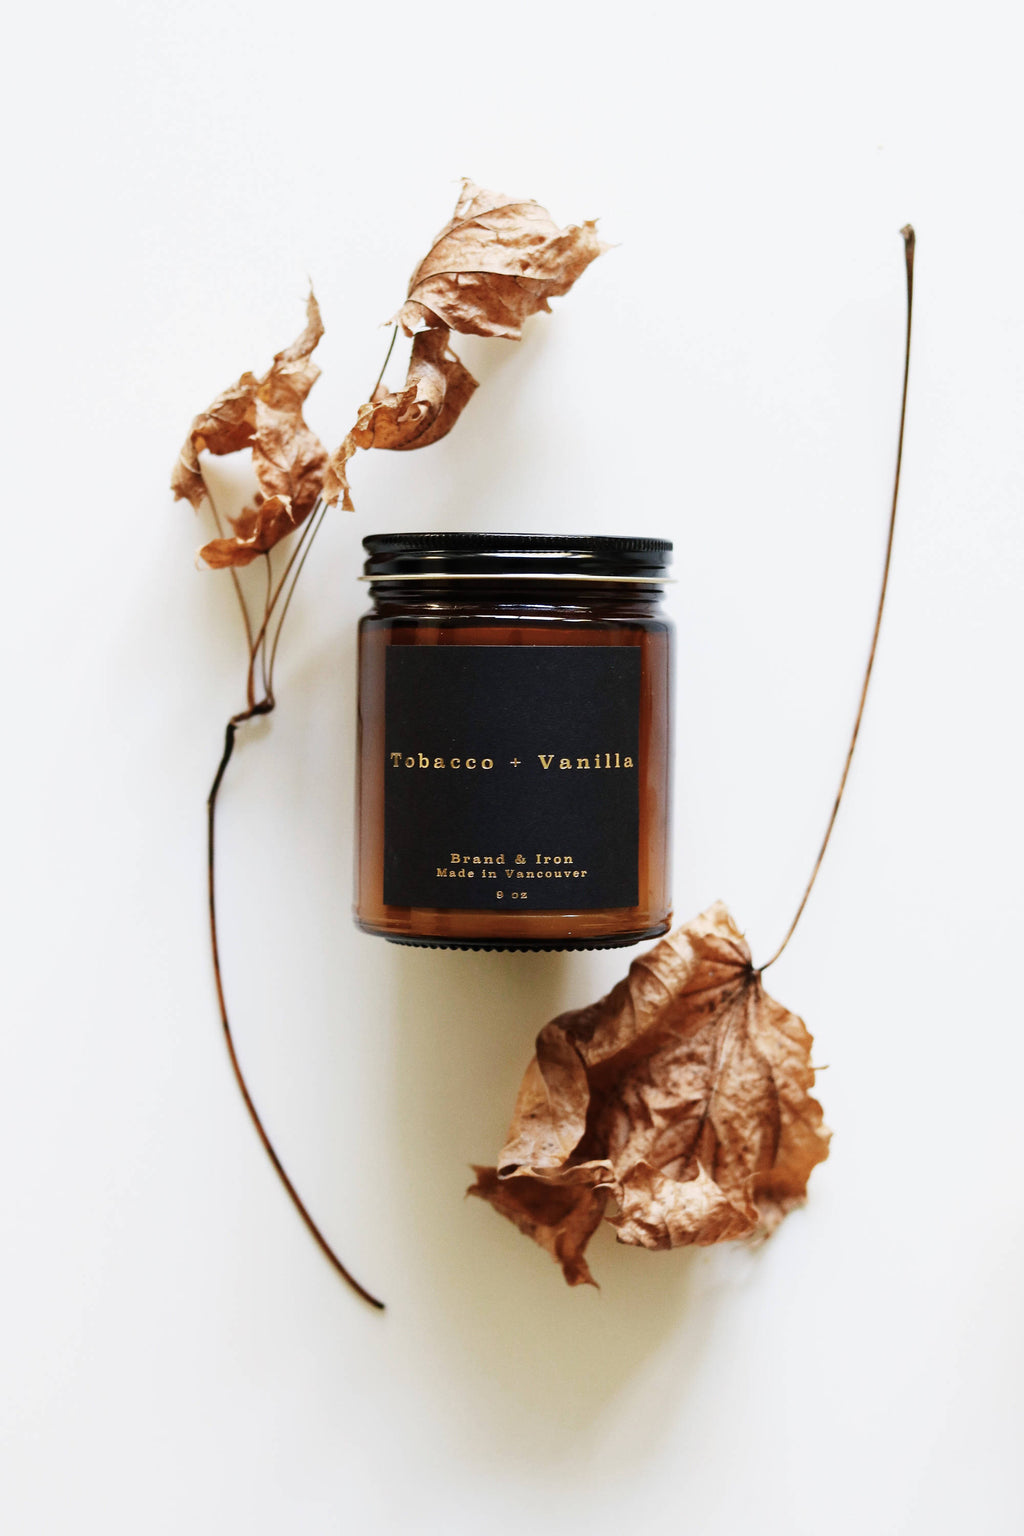 Tobacco + Vanilla Dark Spaces Candle